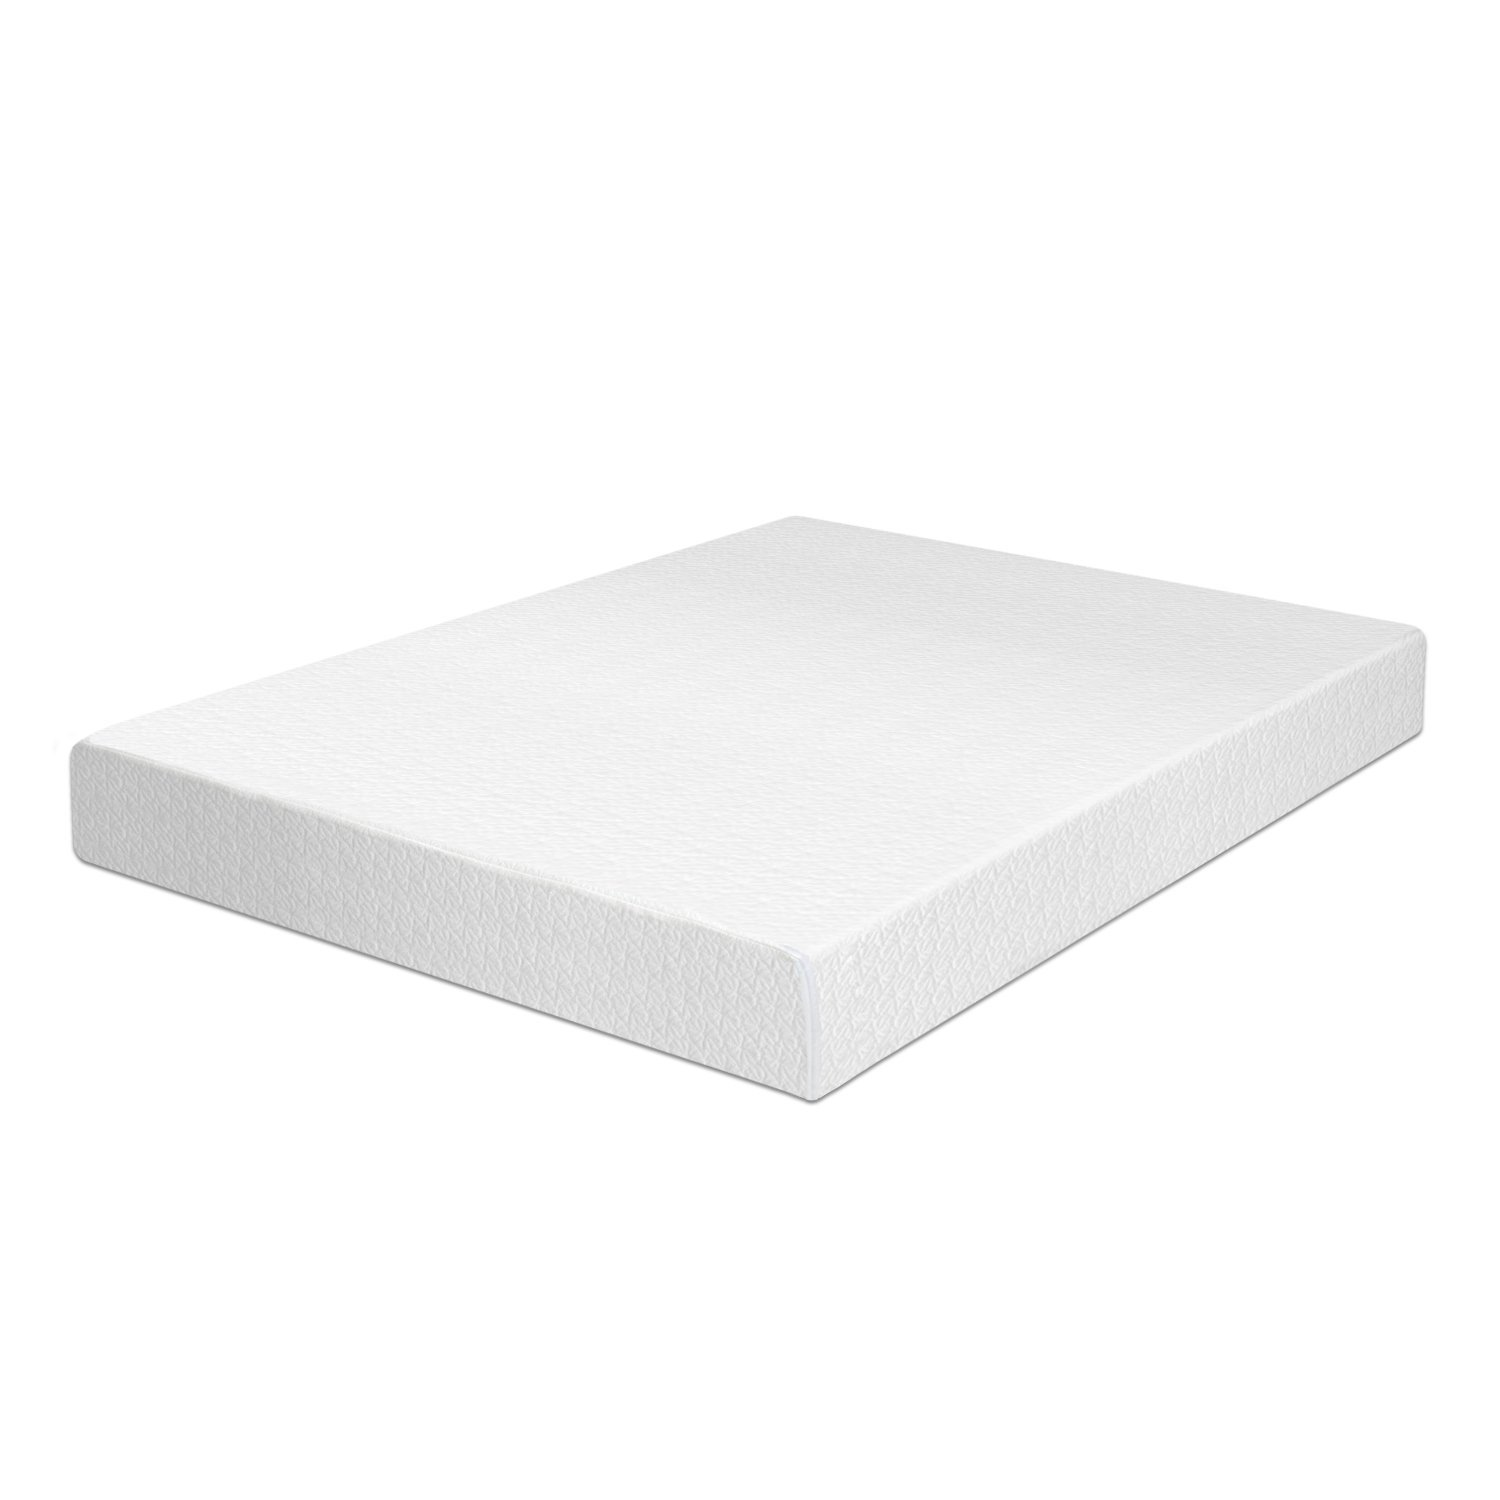 Cheap Queen Size Beds And Mattresses For Economical Choice